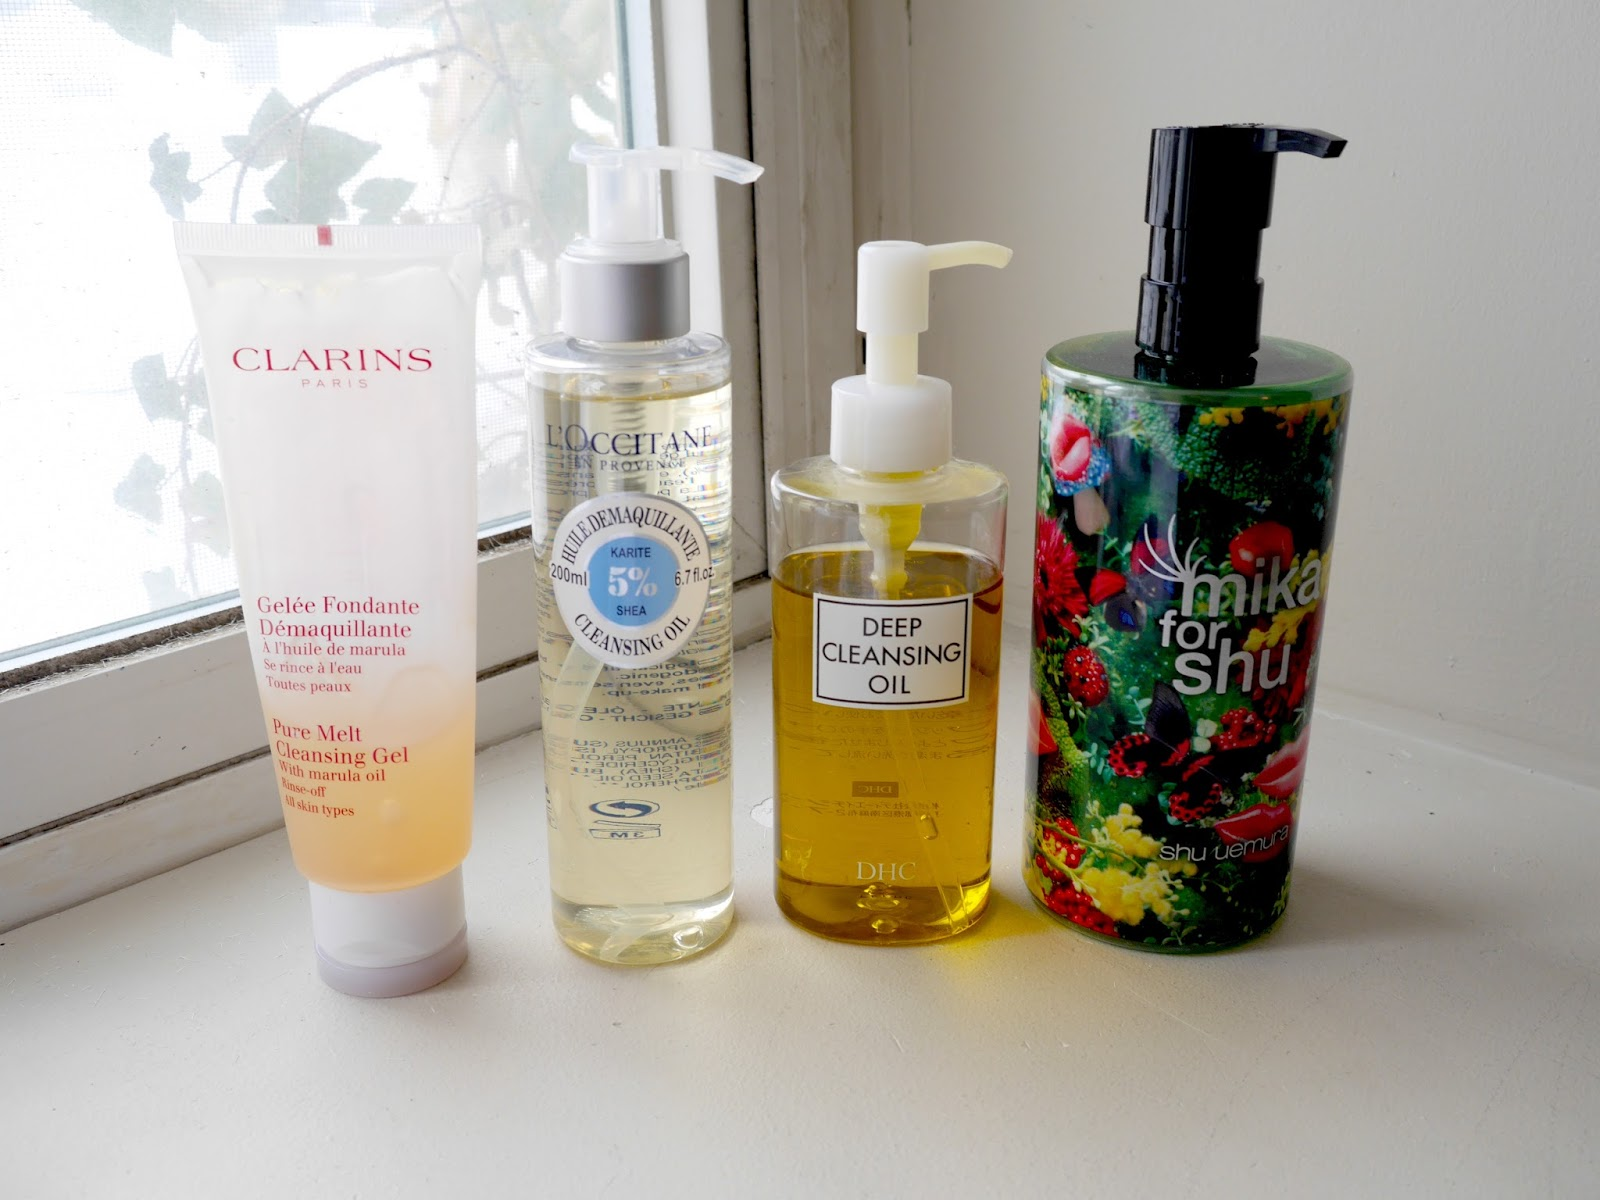 clarins pure melt cleansing gel l'occitane dhc mika for shu anti-oxidant